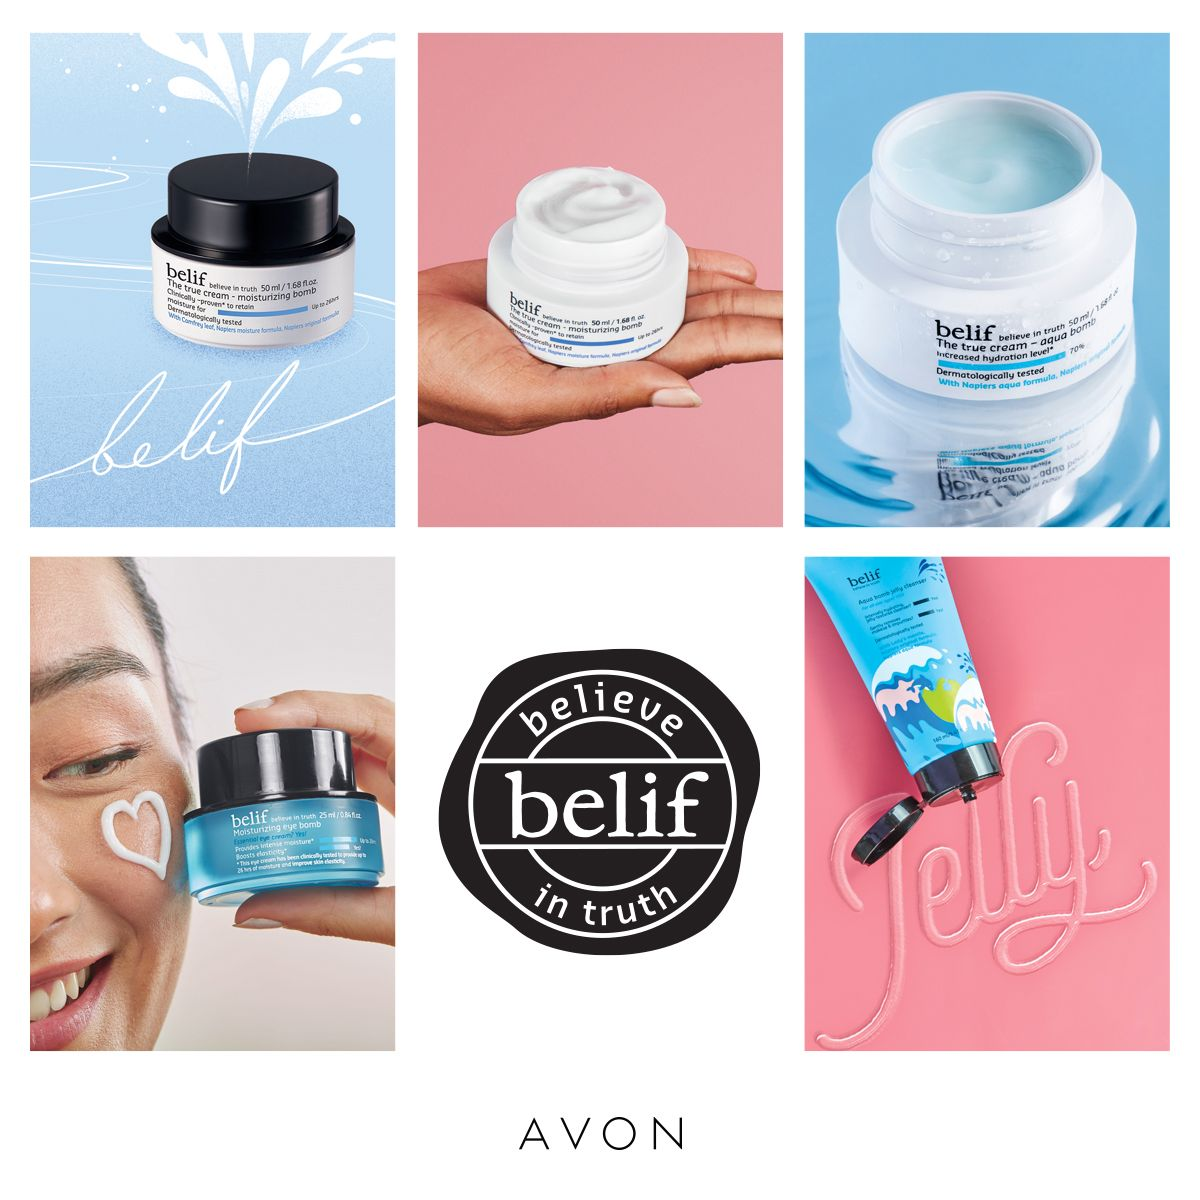 Belif combines time-trusted apothecary herbal traditions with modern Korean skin science. #believeintruth #belif #avonbeautyboss…